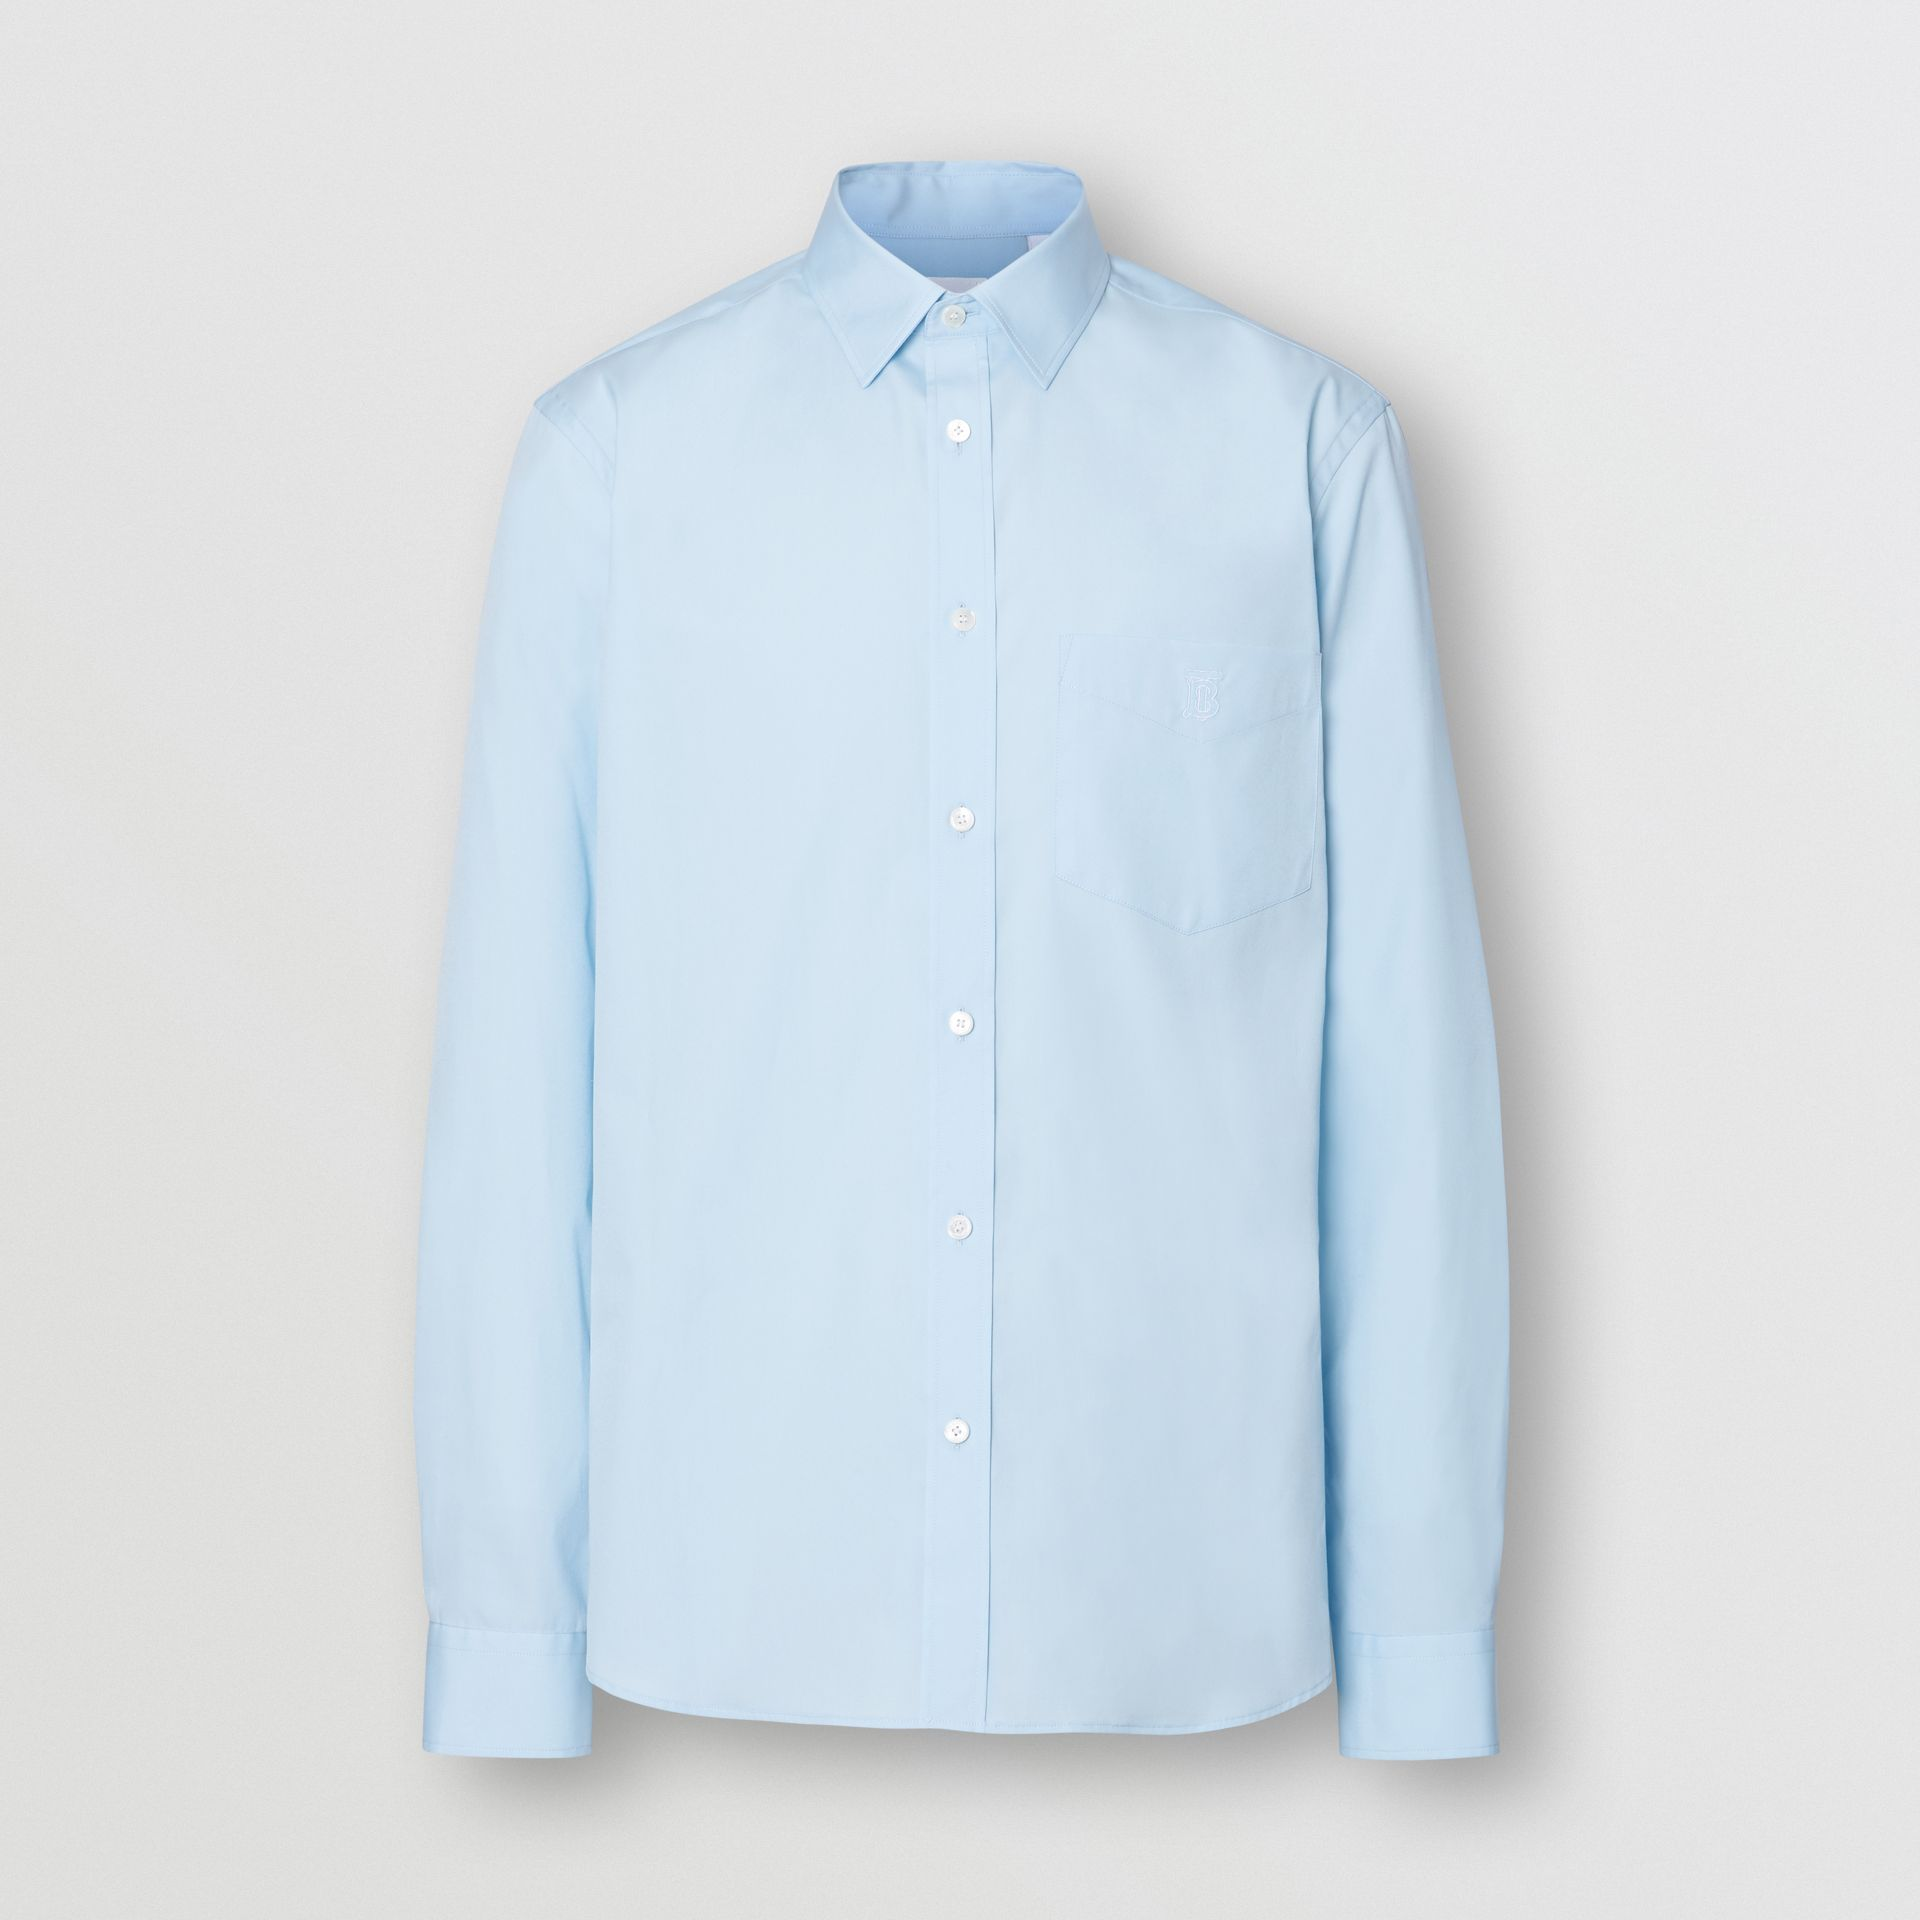 Monogram Motif Stretch Cotton Poplin Shirt in Pale Blue - Men | Burberry Australia - gallery image 3